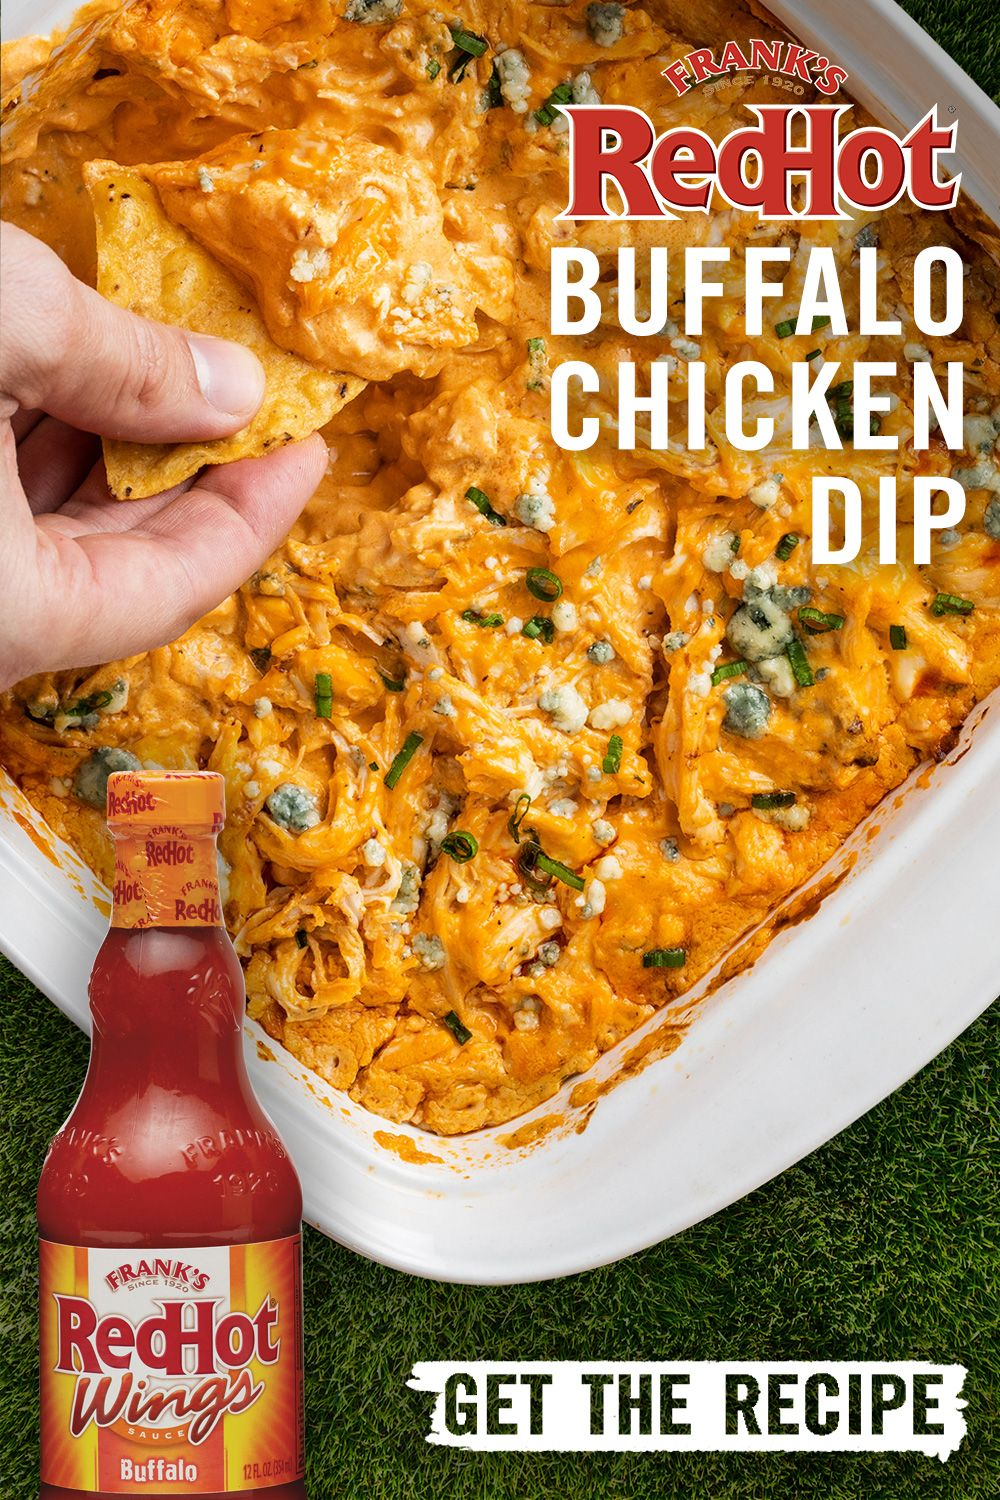 Frank S Redhot Buffalo Chicken Dip Recipe With Images Party Food Appetizers Recipes Easy Appetizer Recipes